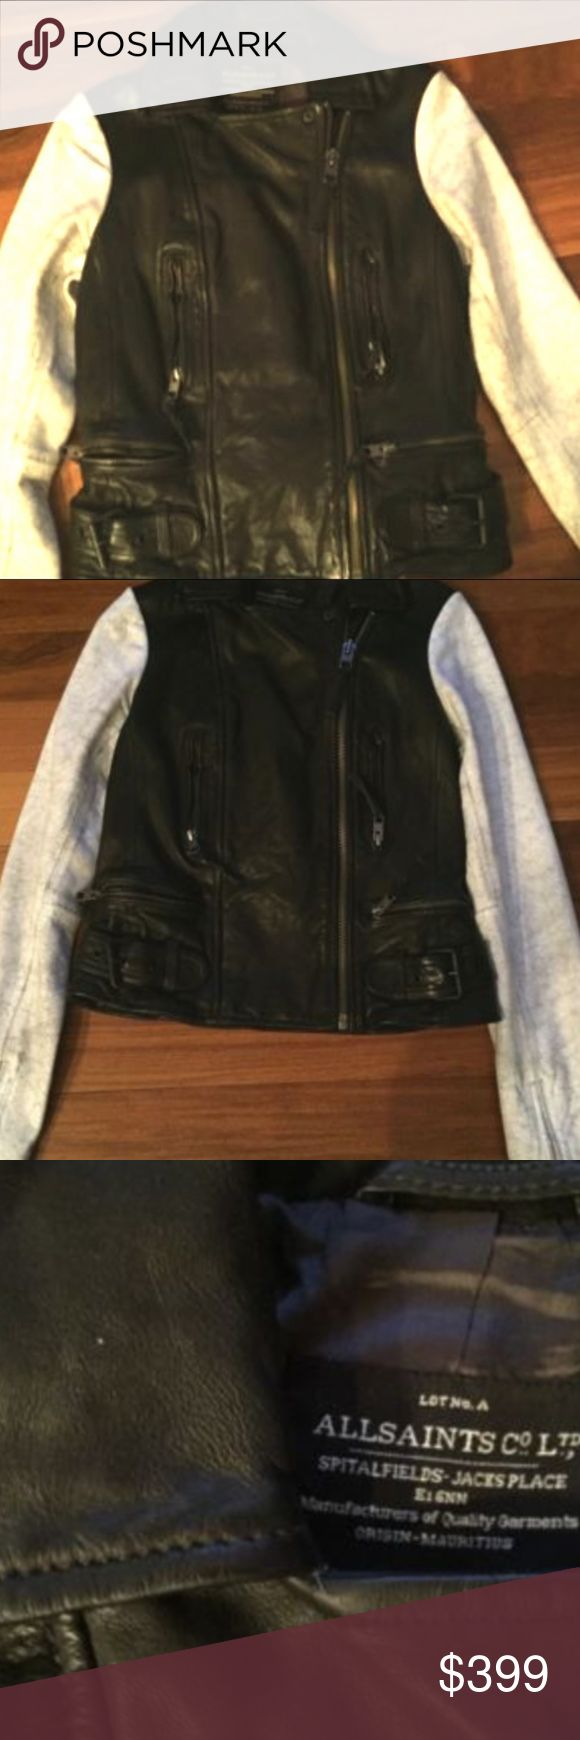 AllSaints Leather Jacket Blk & White Distressed 4 New without tags authentic ALLSAINTS distressed leather biker jacket in US size 4. It is a very rare style that features off center zip and extra distressed white zippered sleeves. It is very striking and flattering. This jacket has great details: Zip Sleeves Two front vertical pockets with Zip Buckles at bottom of each side with horizontal zip pockets just above them All Saints Jackets & Coats